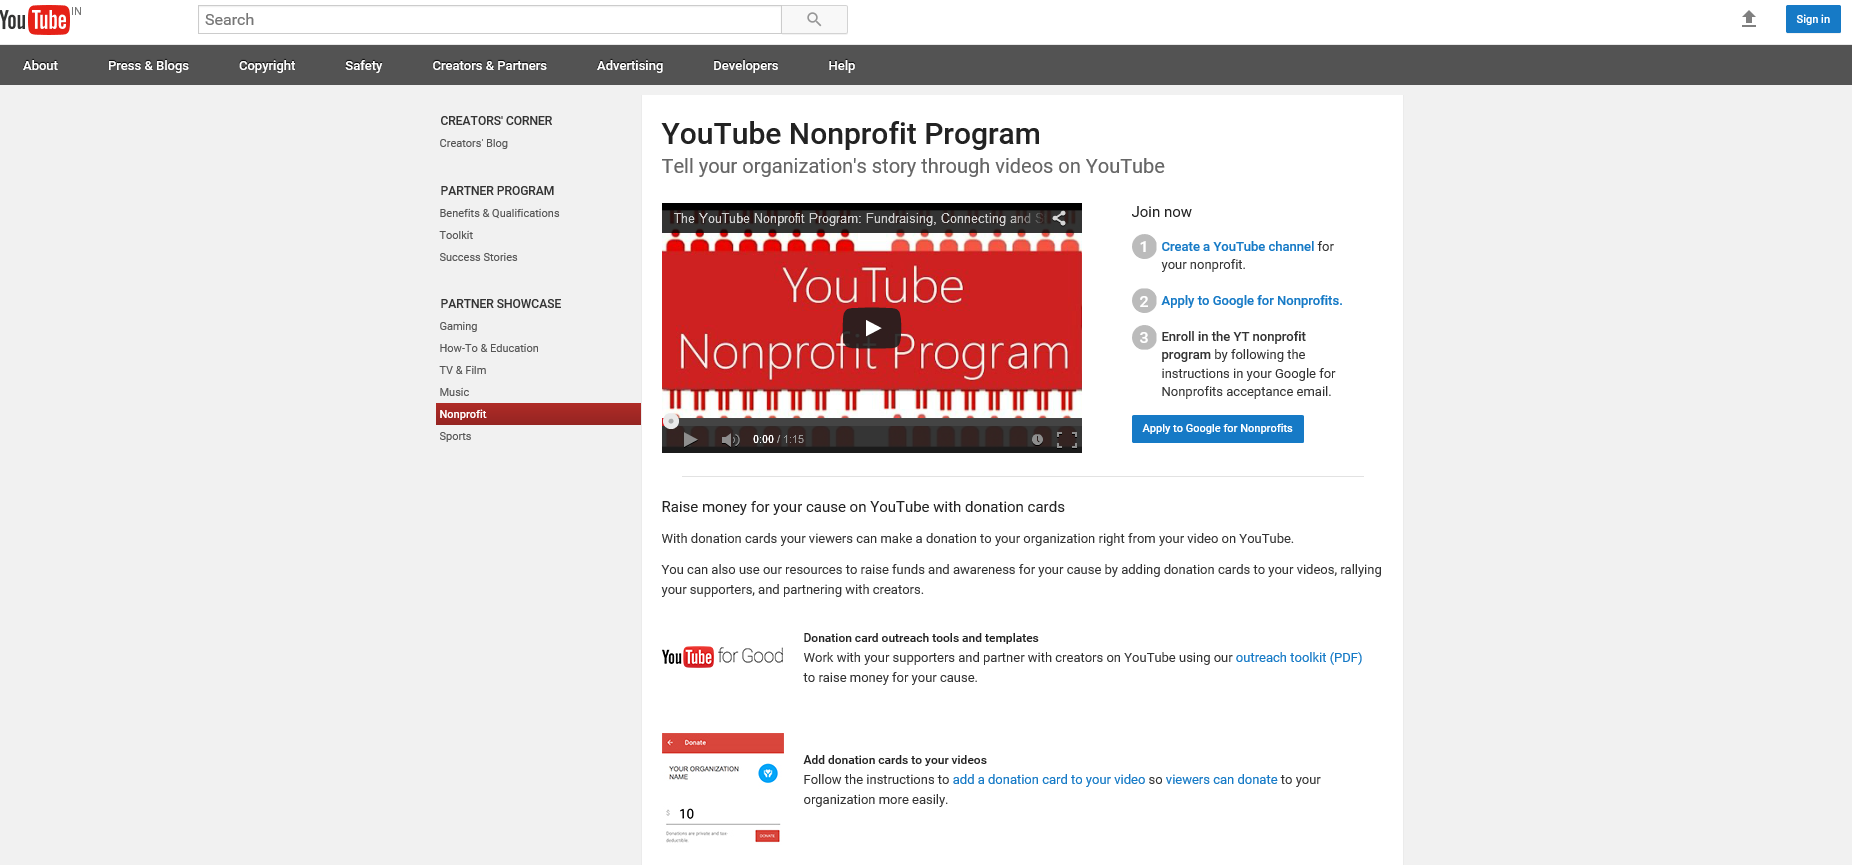 You Tube Nonprofit Program